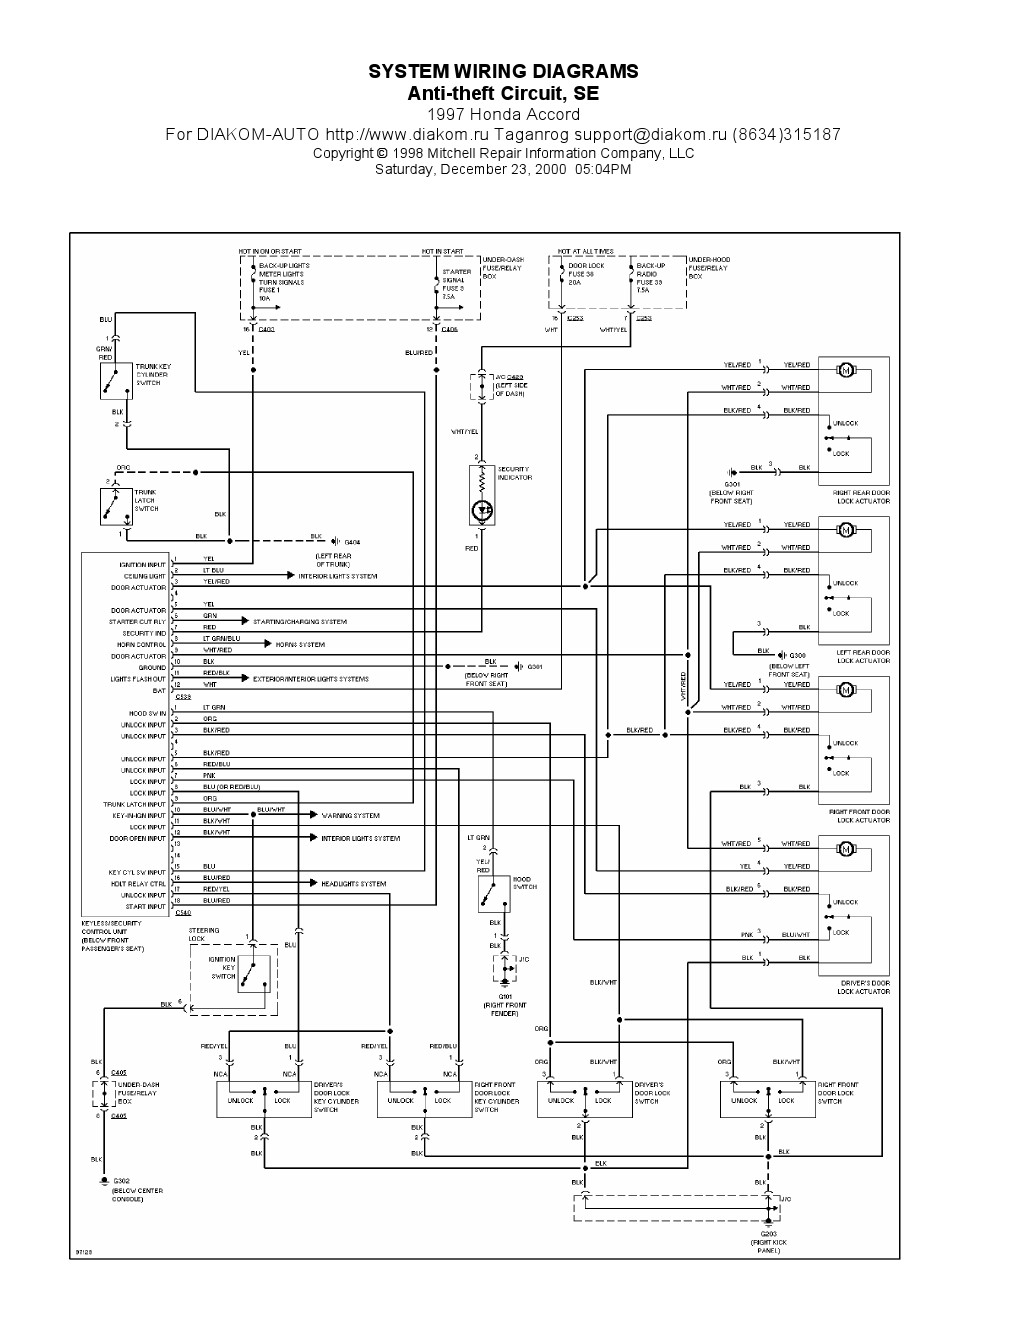 Honda Accord Wiring Diagram Pdf Gallery Wiring Diagram Sample